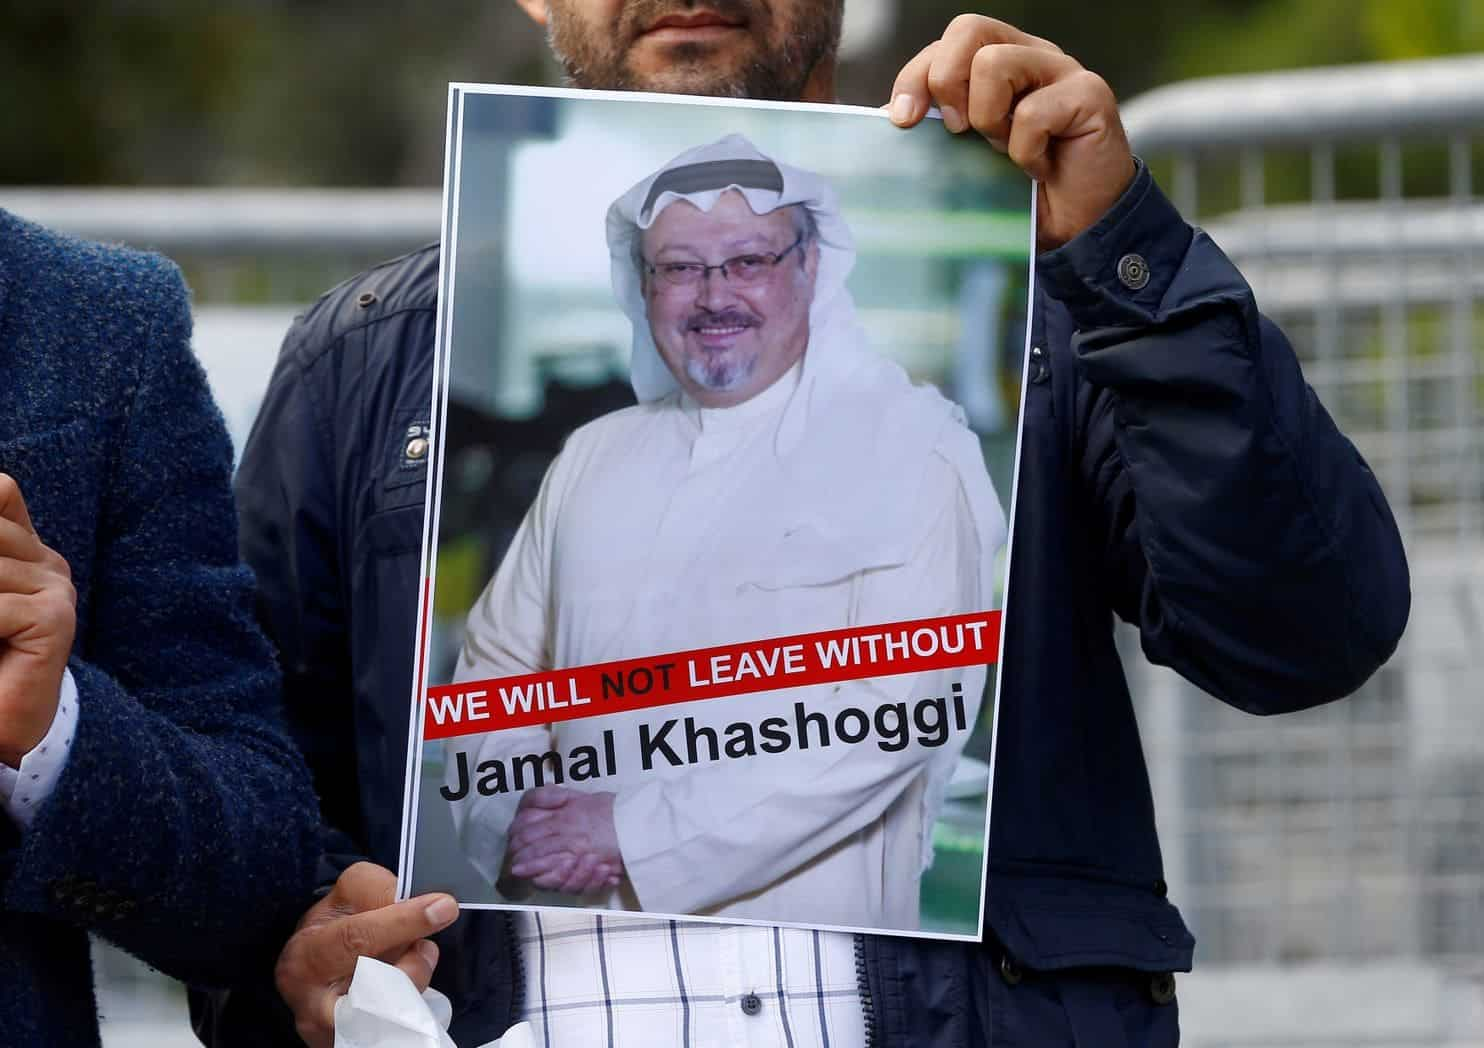 Turkish newspaper claims to have audio proving beheading of missing Saudi journalist 3